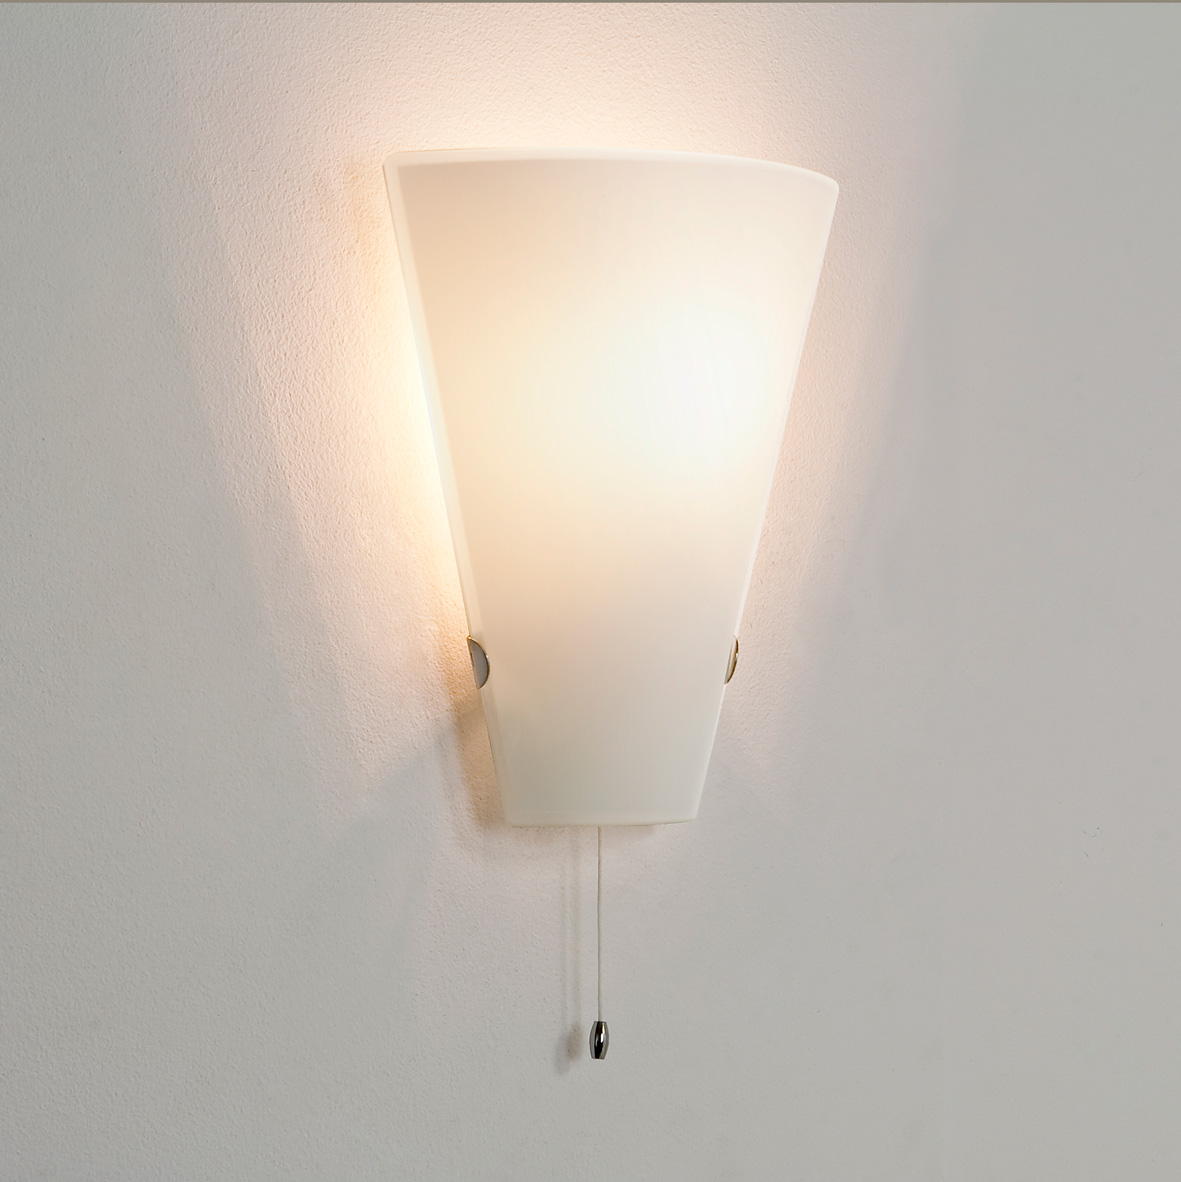 Self Switched Wall Lights : Astro Taper 0248 dimmable pull cord switch wall light 60W E14 lamp IP20 glass eBay